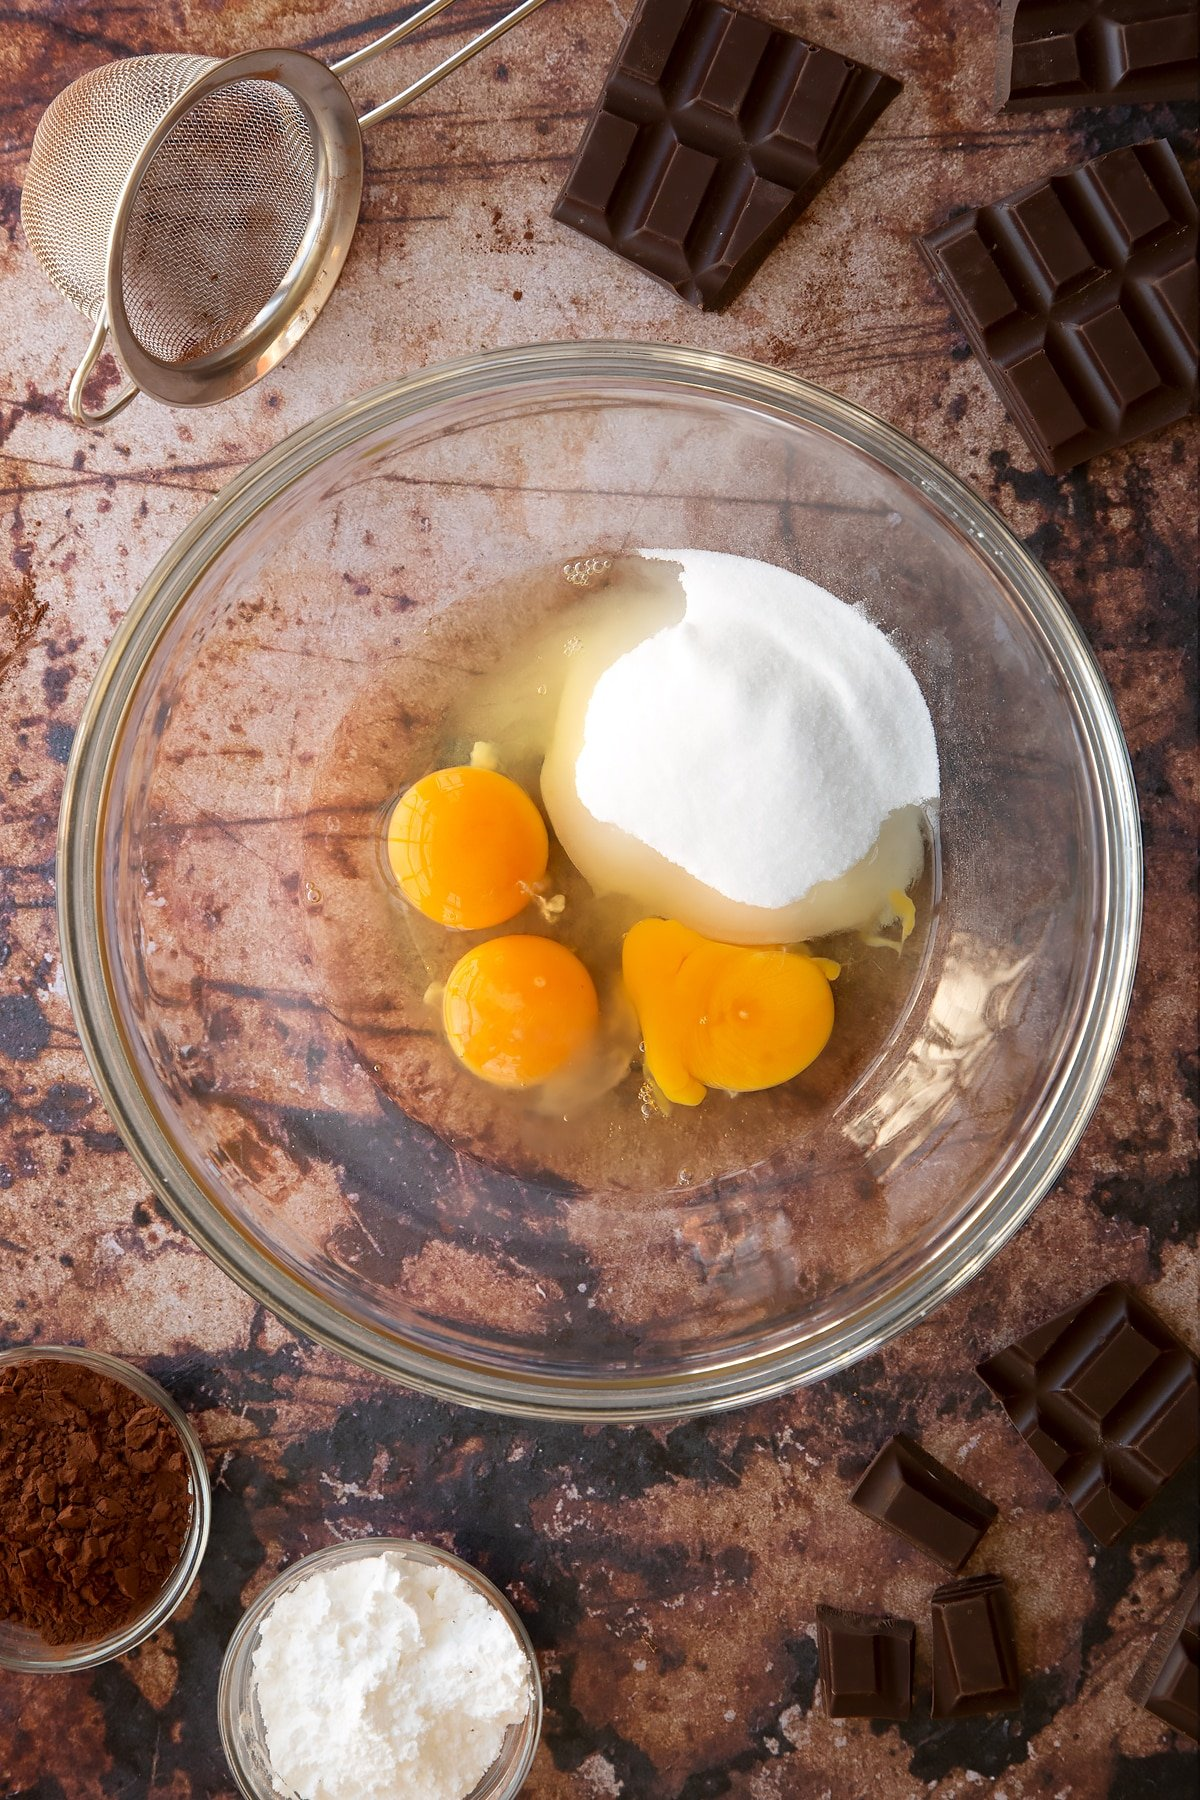 Eggs and caster sugar in a bowl. Ingredients to make chocolate Swiss roll surround the bowl.